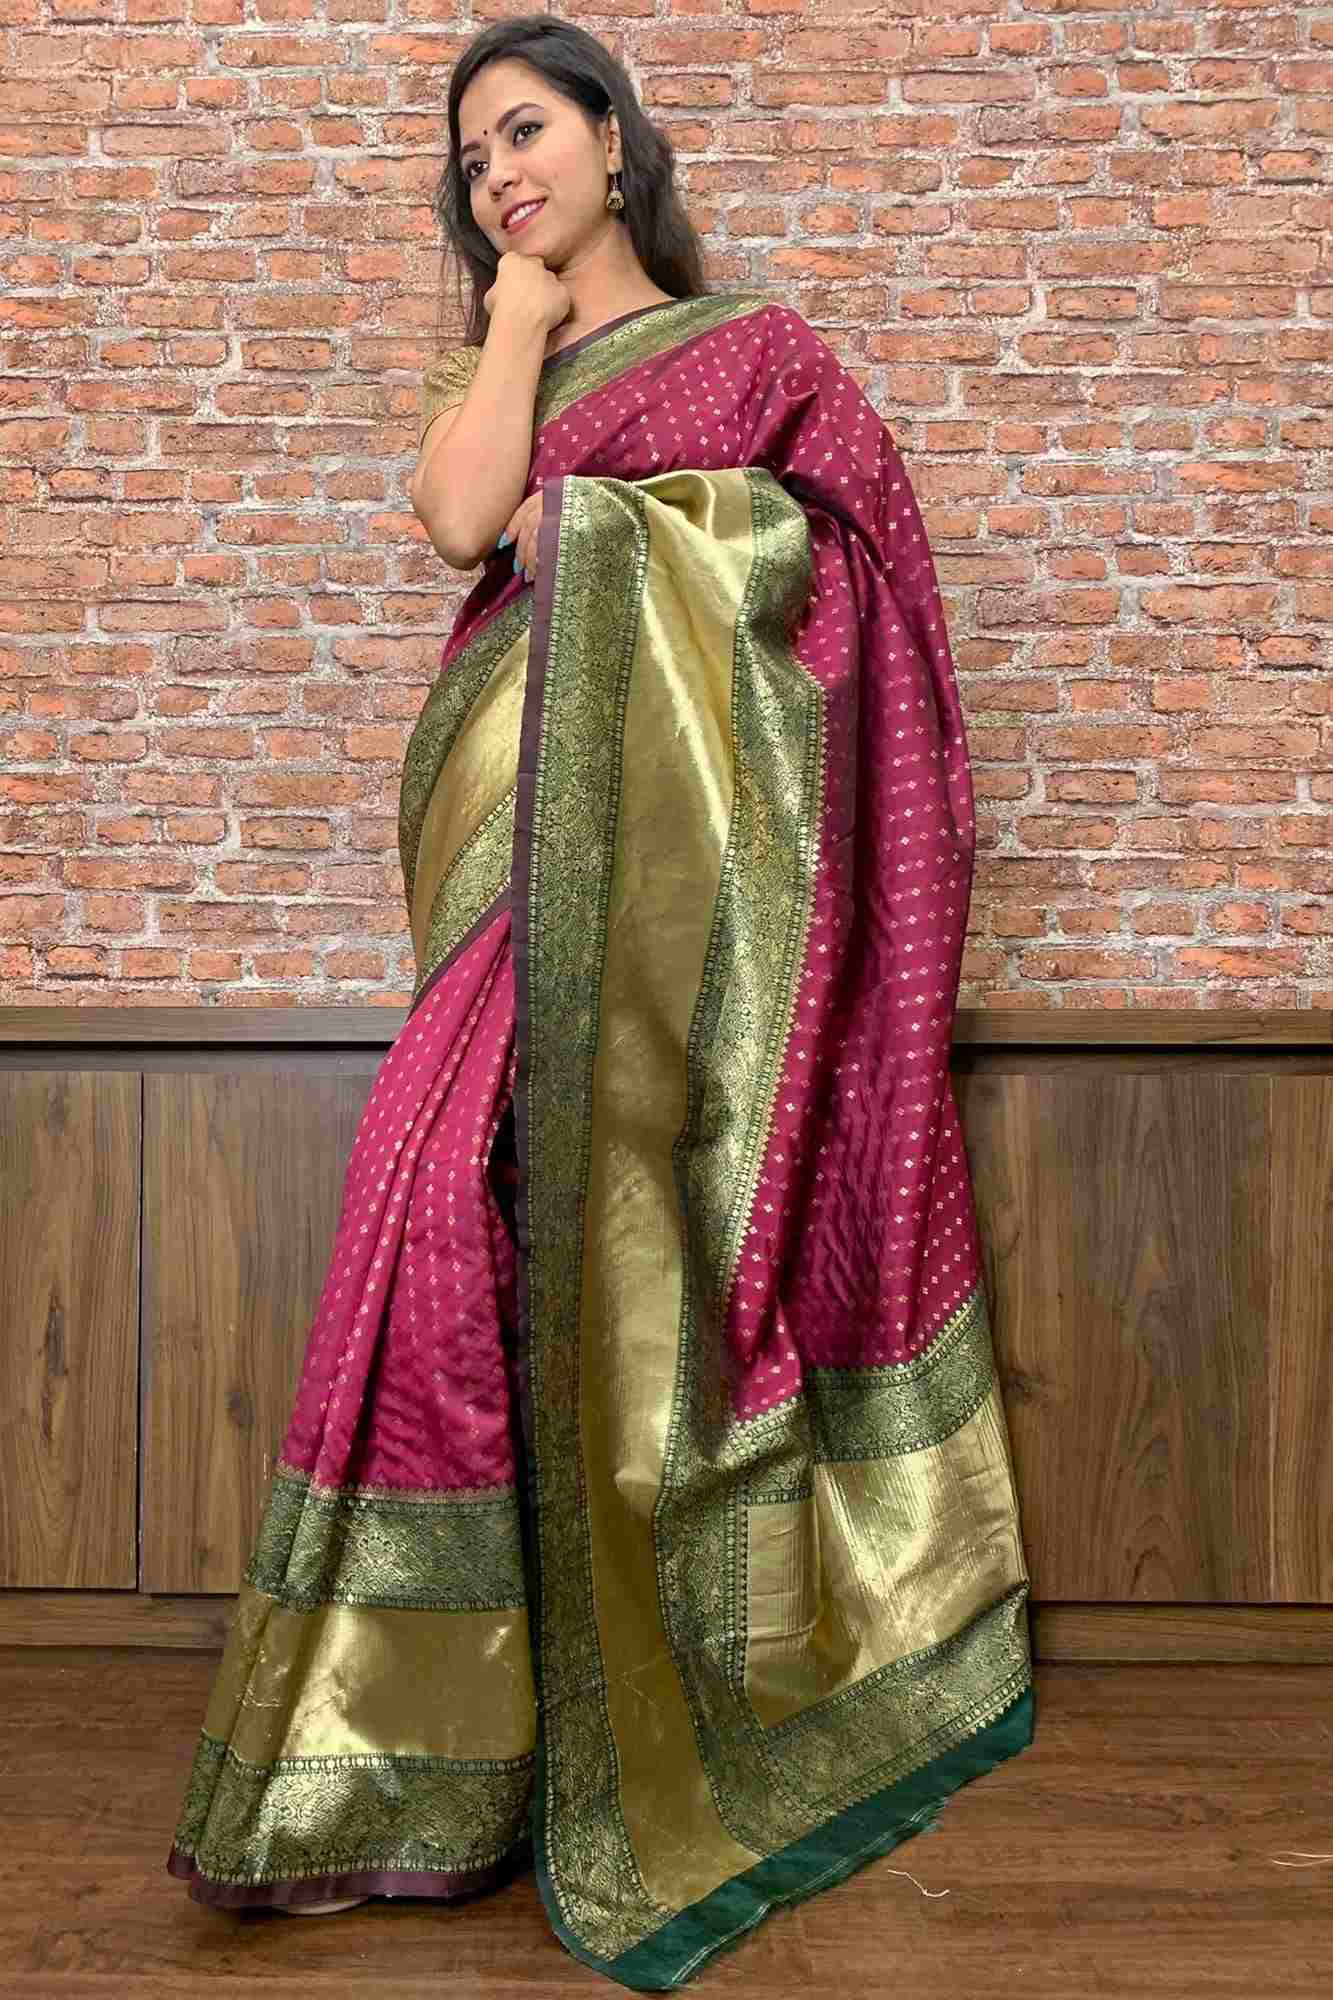 Magenta & gold woven banarasi wrap in 1 minute saree with broad zari pattu border